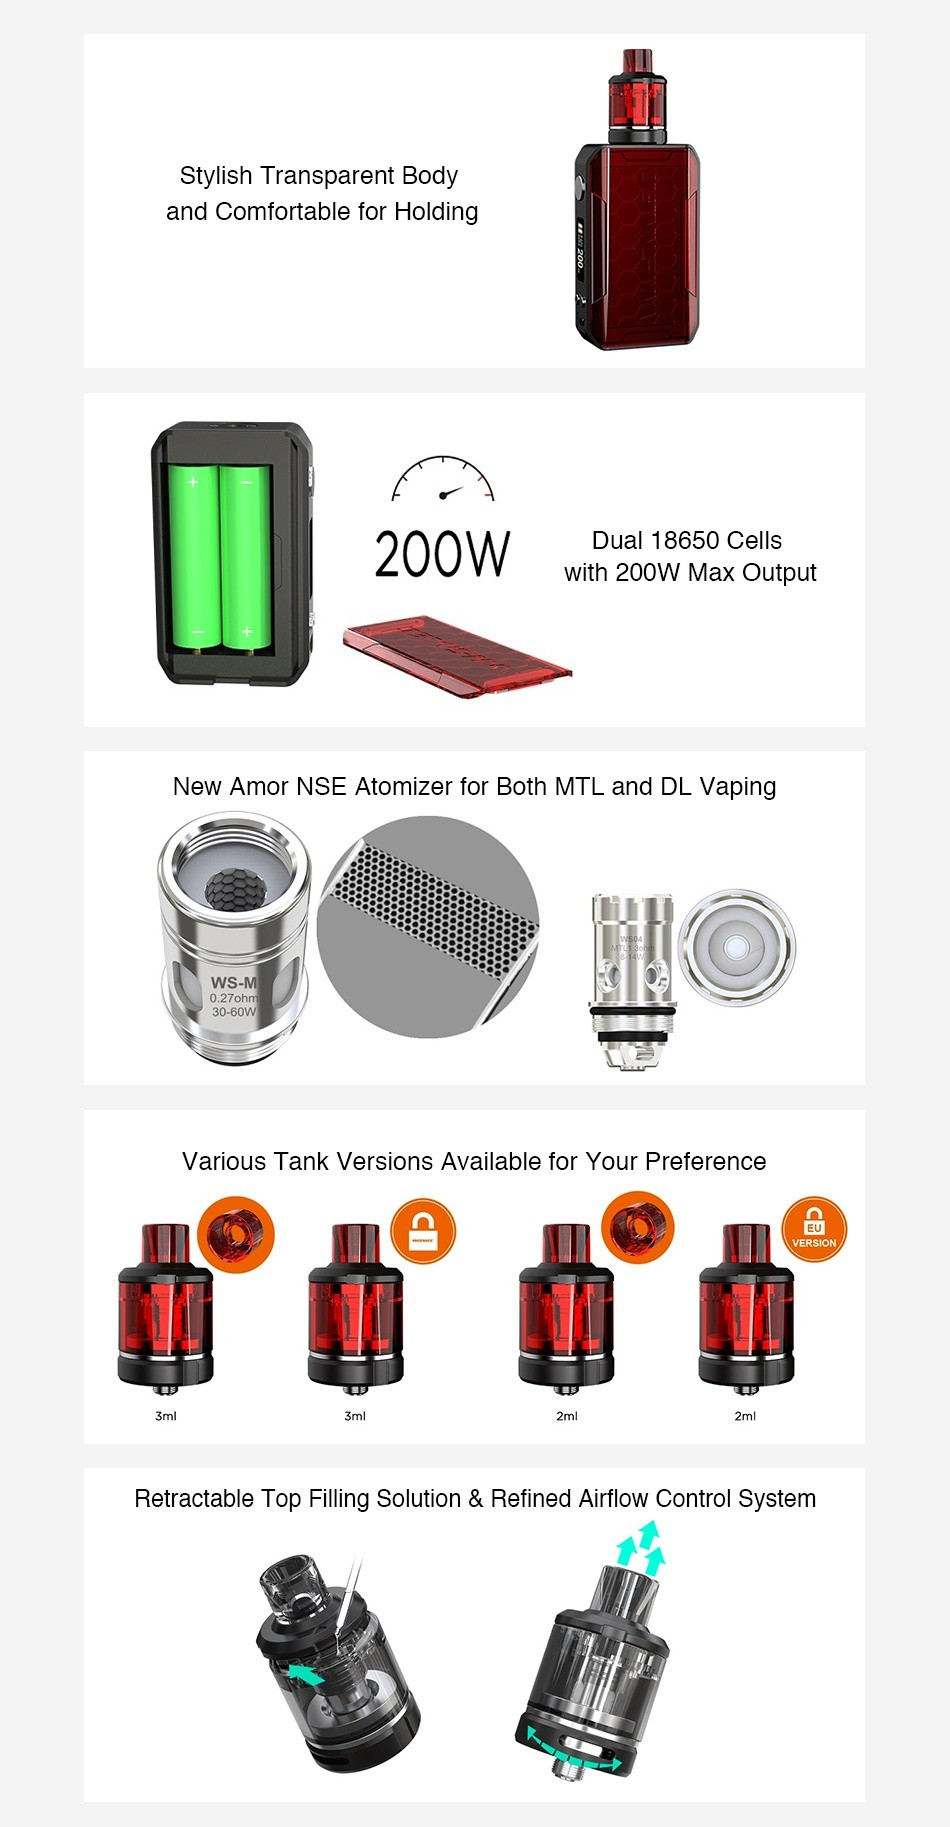 WISMEC SINUOUS V200 200W TC Kit with Amor NSE Stylish Transparent Body and Comfortable for Holding 200W Dual 18650 Cells with 200W Max Output New Amor NsE Atomizer for Both MTL and DL vaping WS M 0 27oh Various tank versions available for your preference VERSION Retractable Top filling solution refined airflow Control system